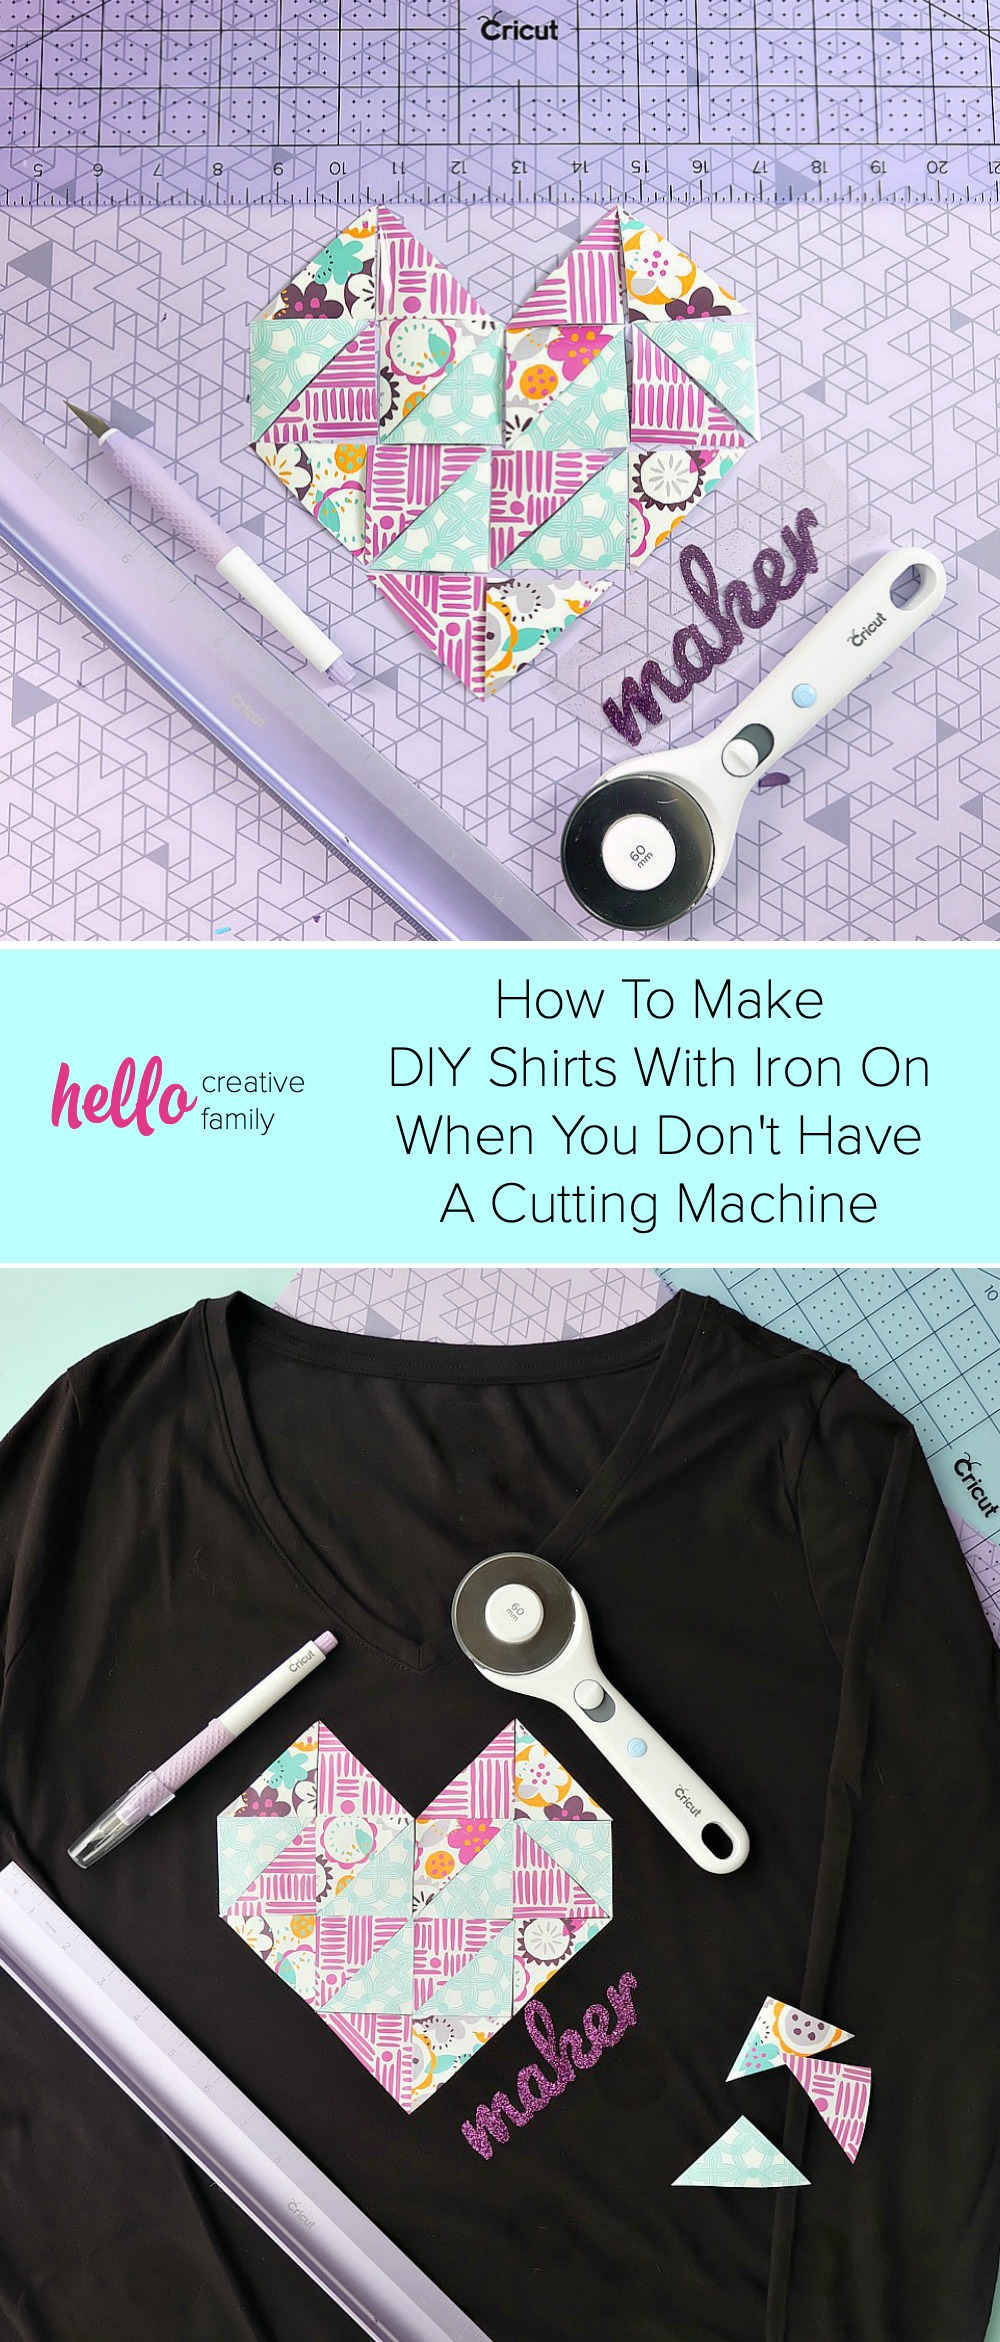 Learn how to make DIY Shirts with Iron On HTV even if you don't have a cutting machine! We share how to make a hand lettered iron on applique as well as a geometric heart design cutting by hand! #CricutMade #DIYShirts #Sponsored #Cricut #HTV